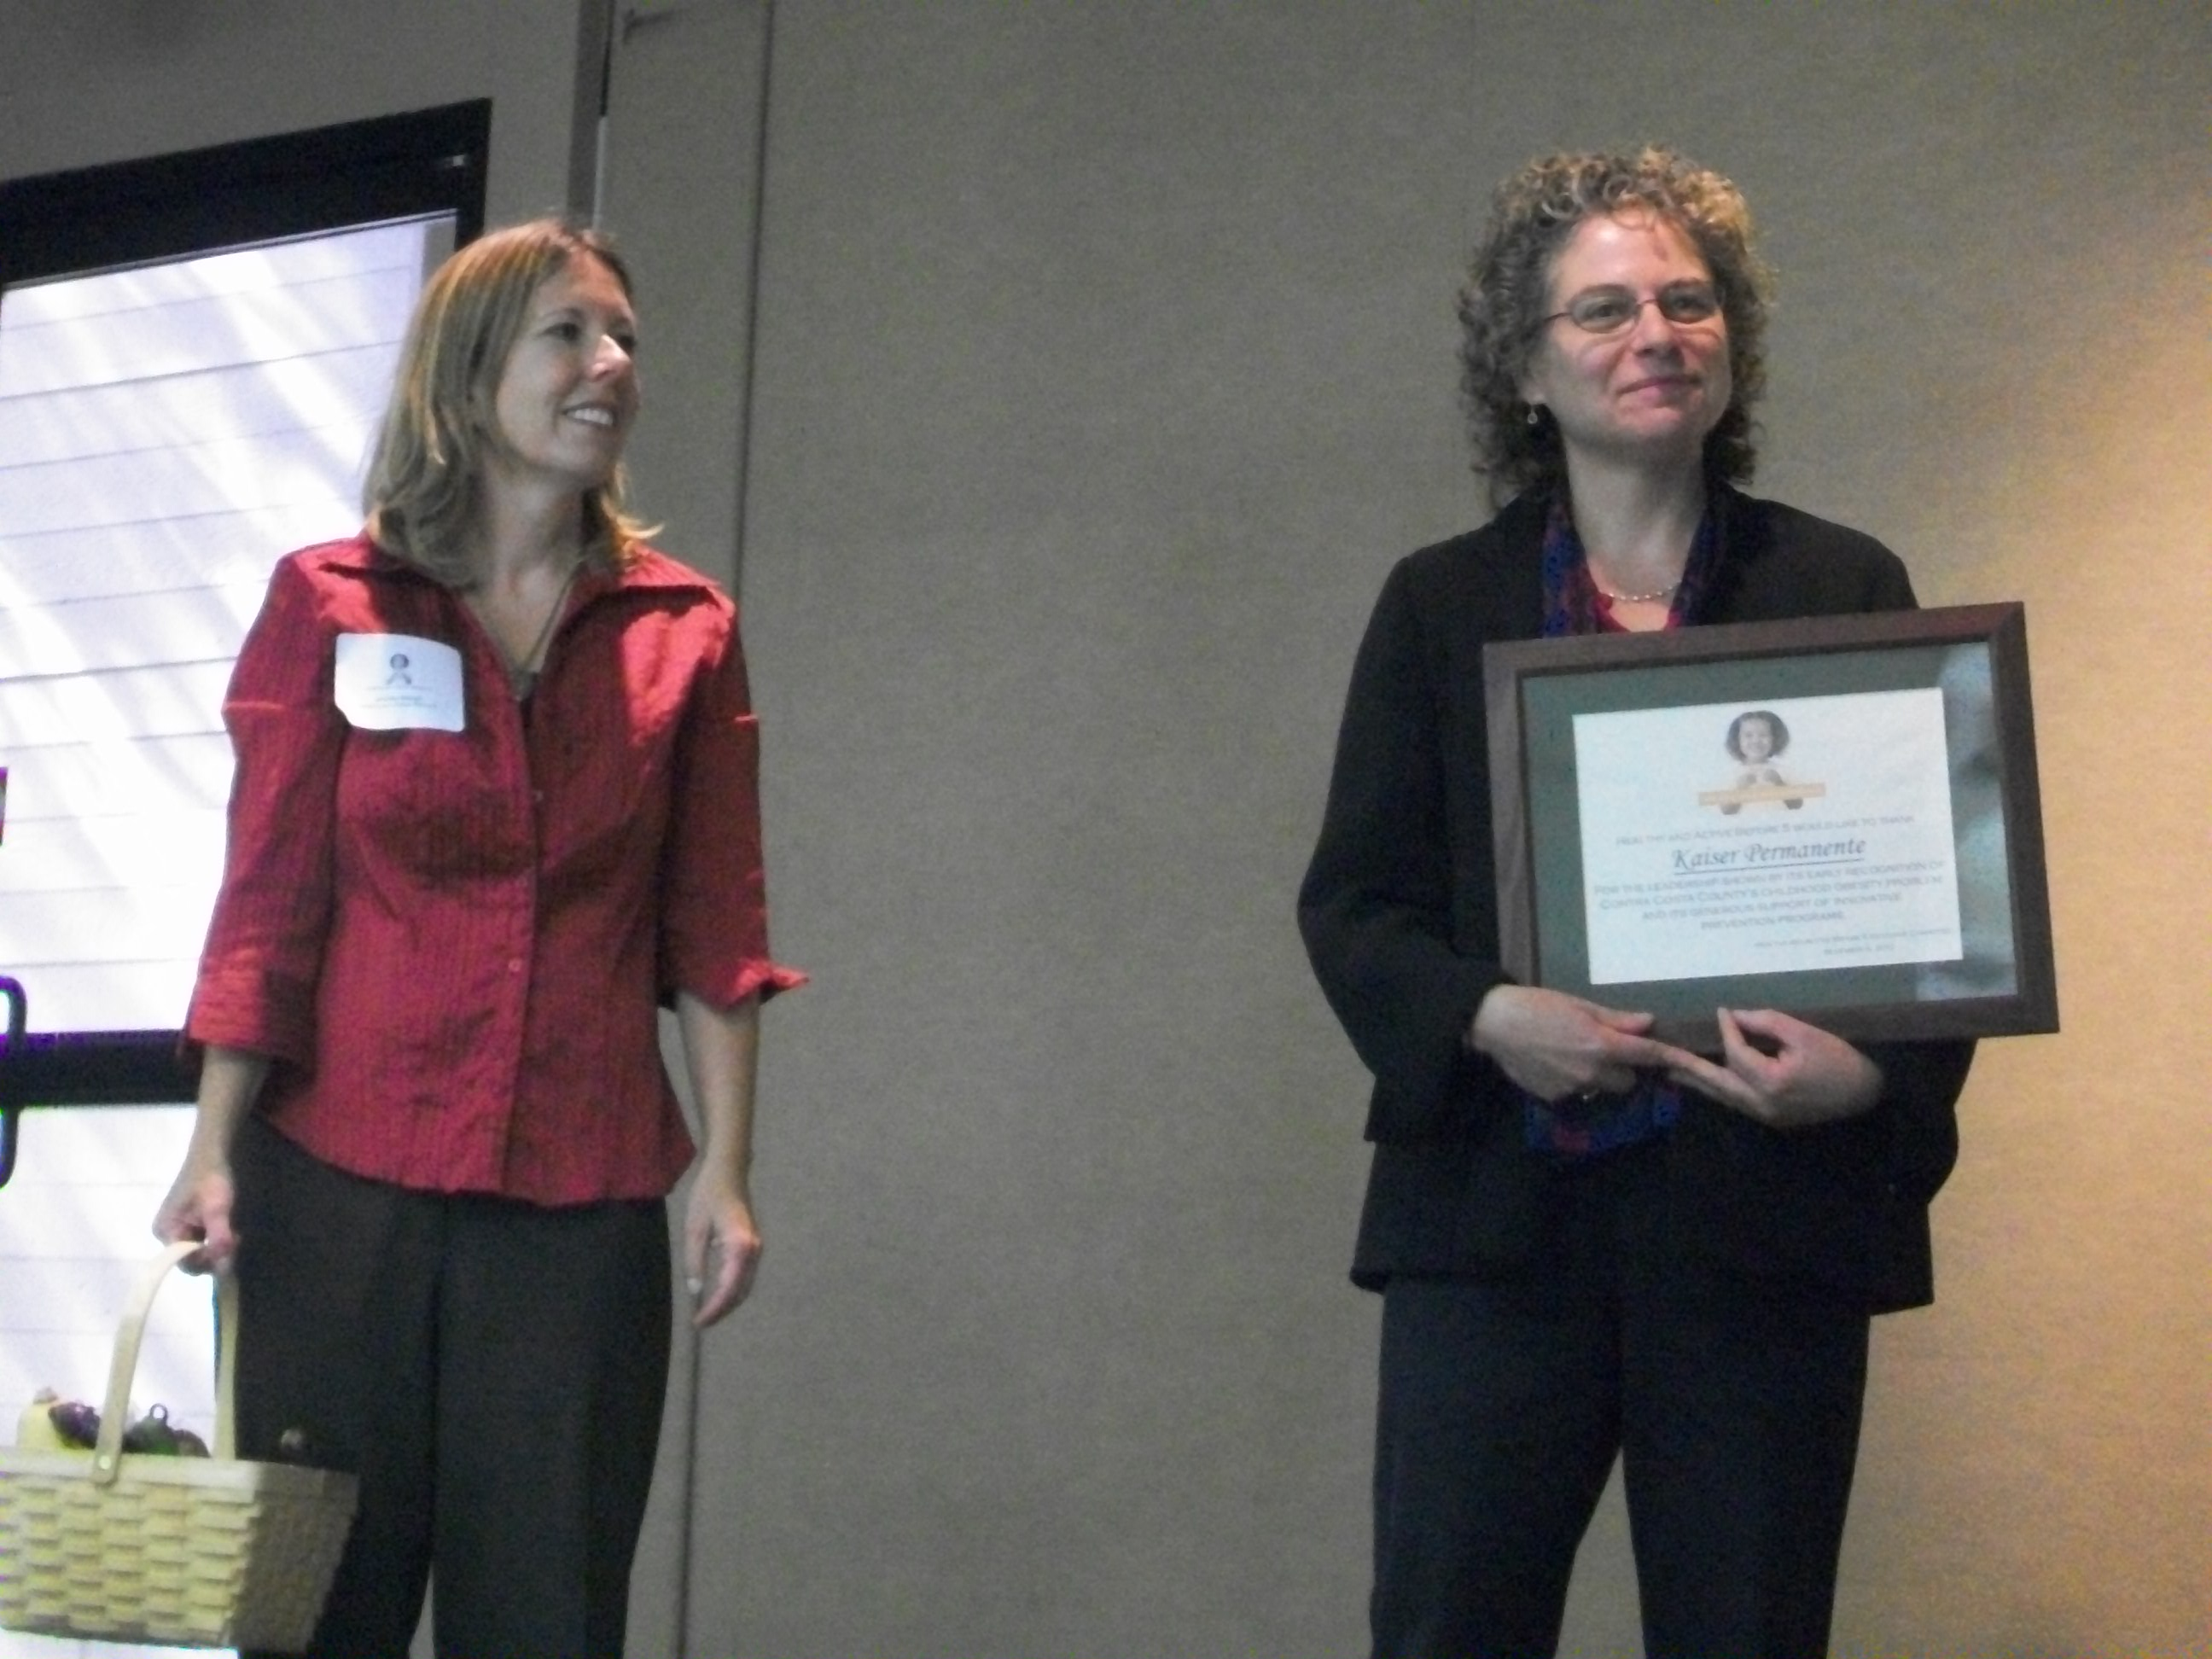 Program Manager Jean Nudelman stands next to Jean Nudelman who accepts the award on behalf of Kaiser Permanente